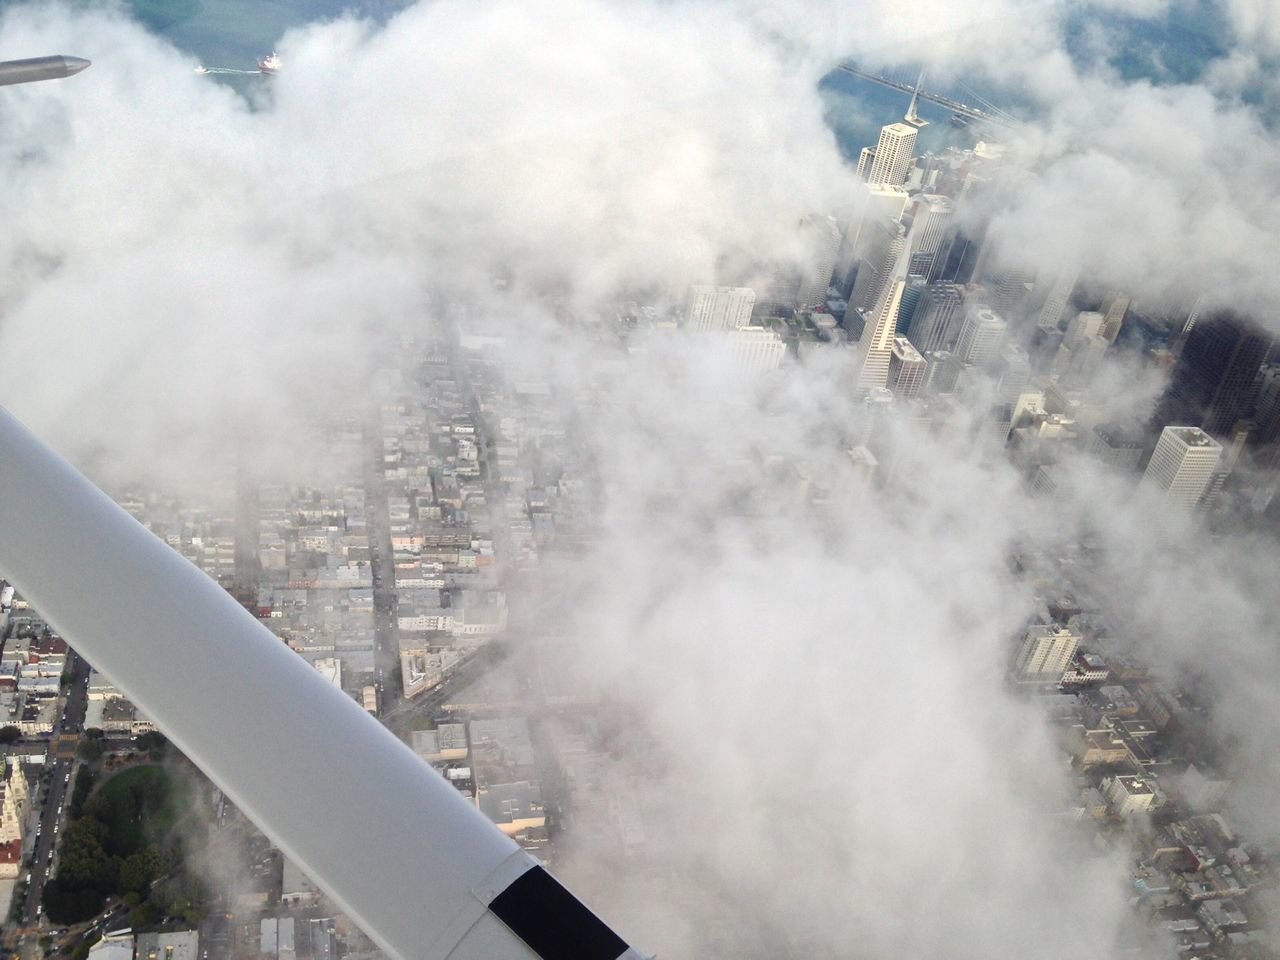 Cropped image of airplane over clouds covering cityscape